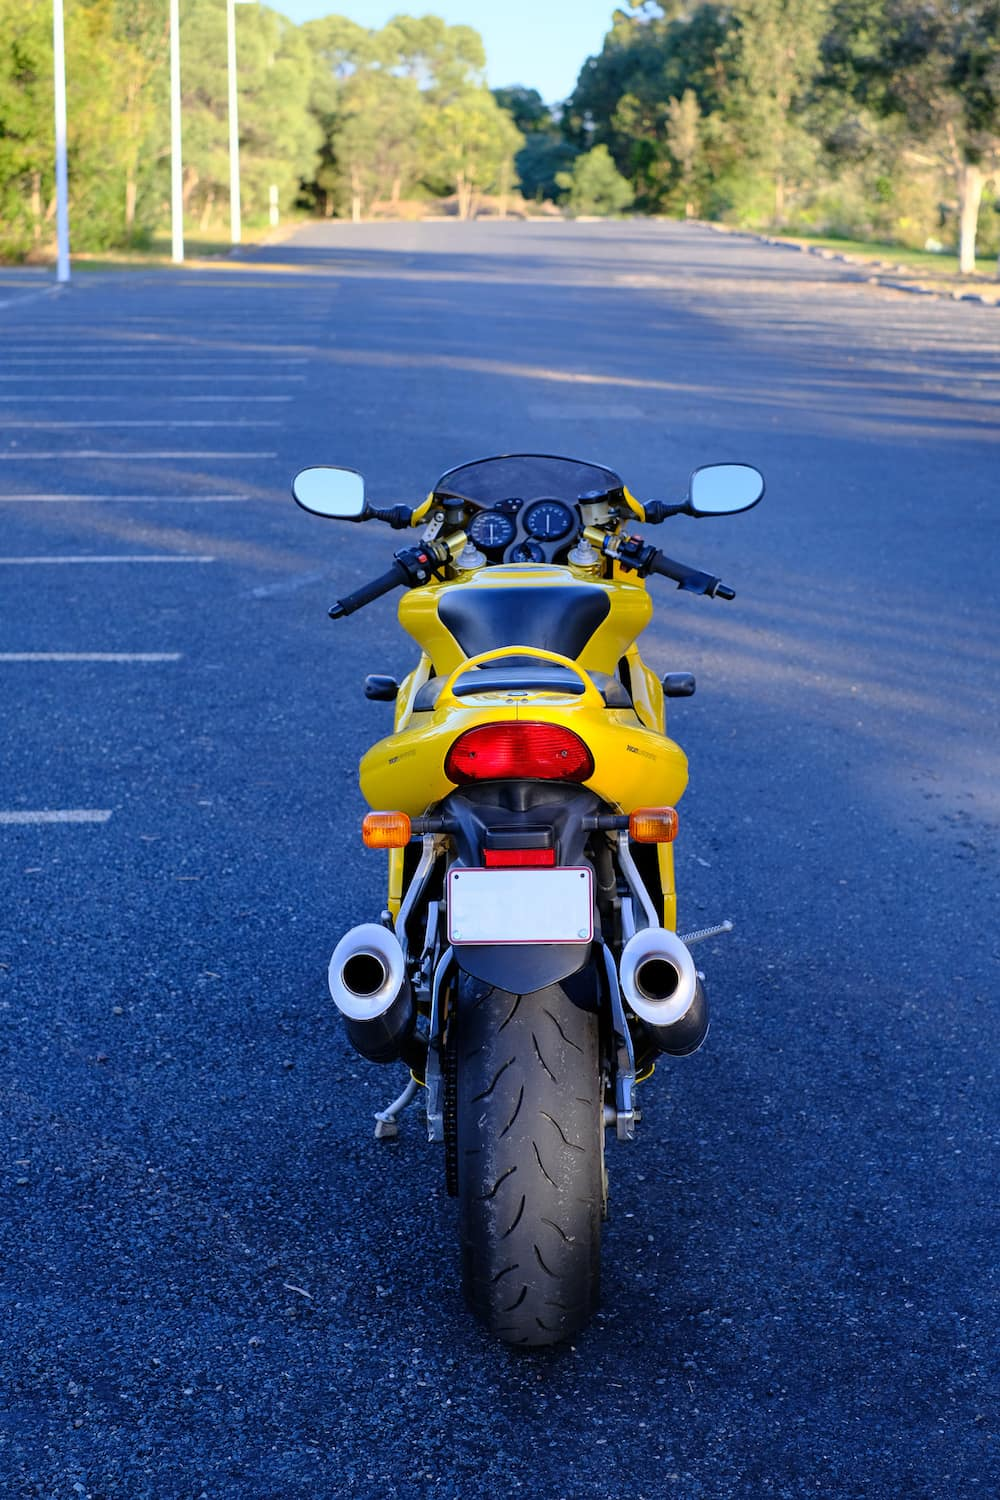 Yellow Ducati Supersport 900 fuel injected from the rear